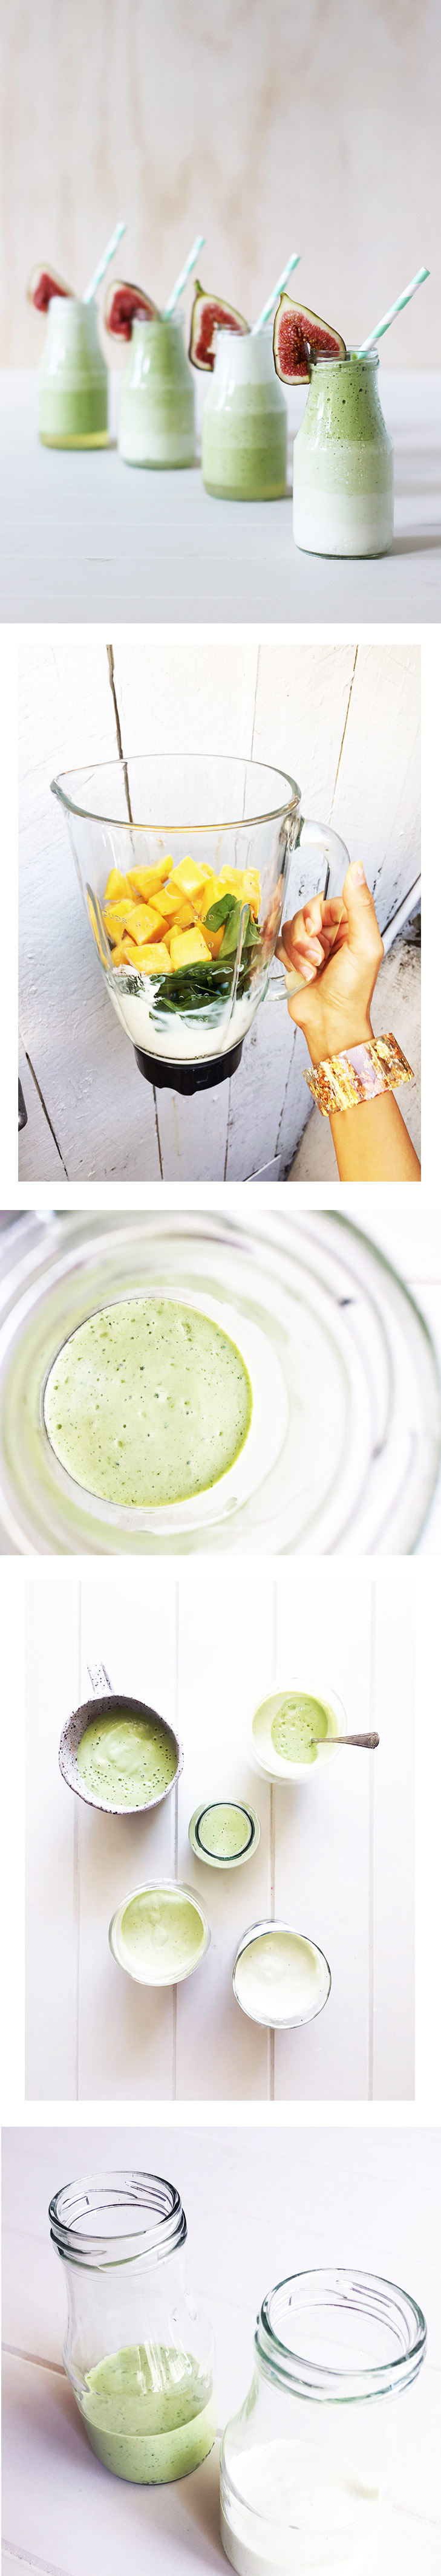 Healthy-Living_Smoothie_Layered-Yoghurt-Green-Spinach-Mango-Coconut-Water